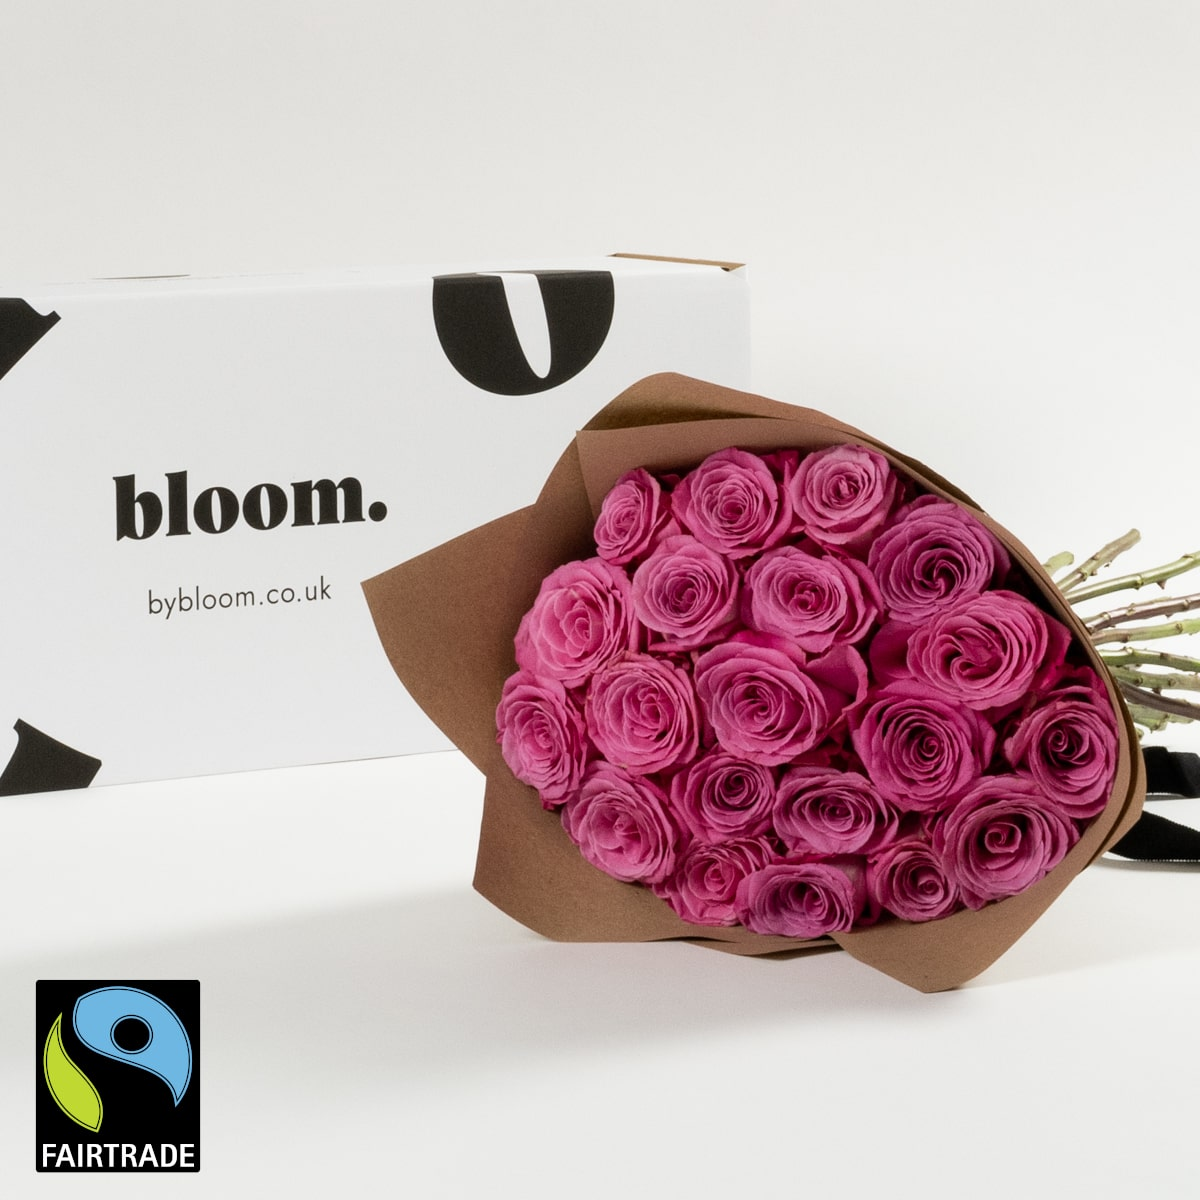 Bloom Flower Delivery | Fairtrade Princess Pink Roses